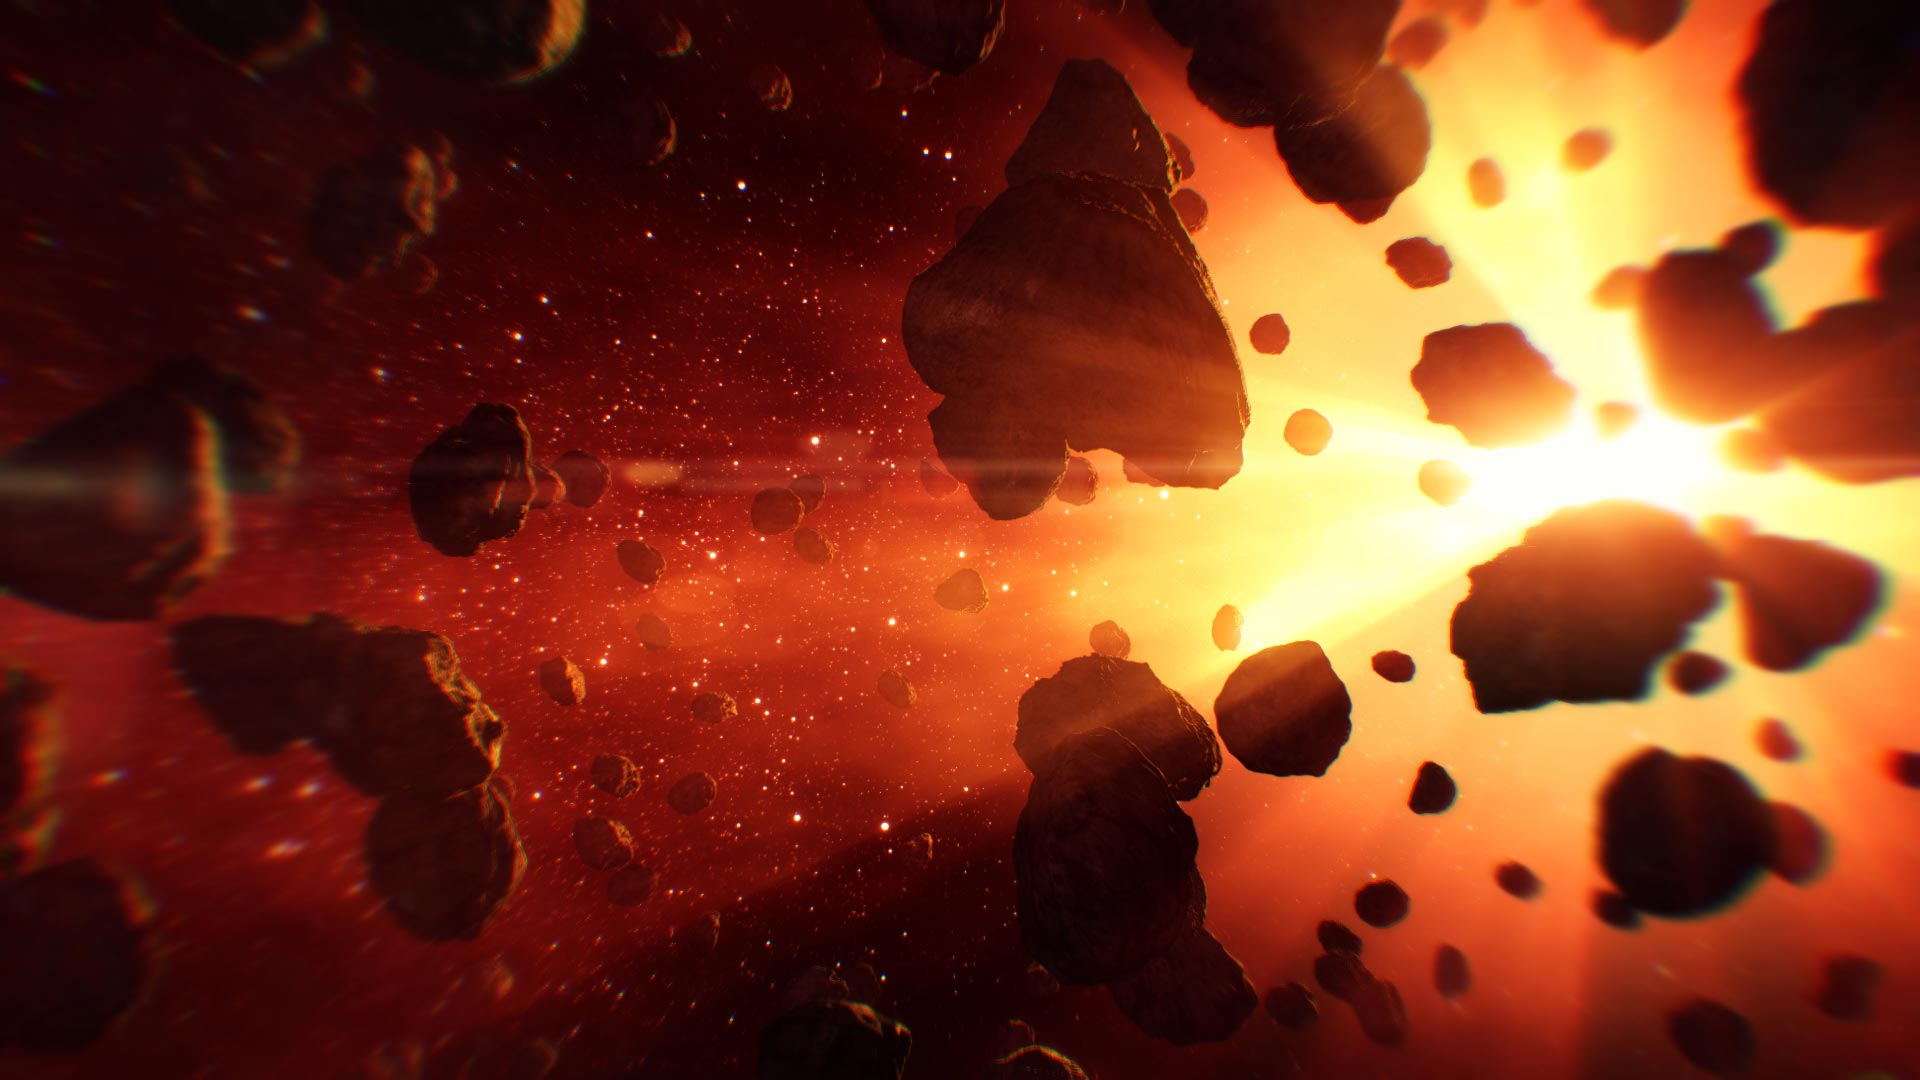 Trapcode Shine is an After Effects plugin from Red Giant for motion graphics and VFX